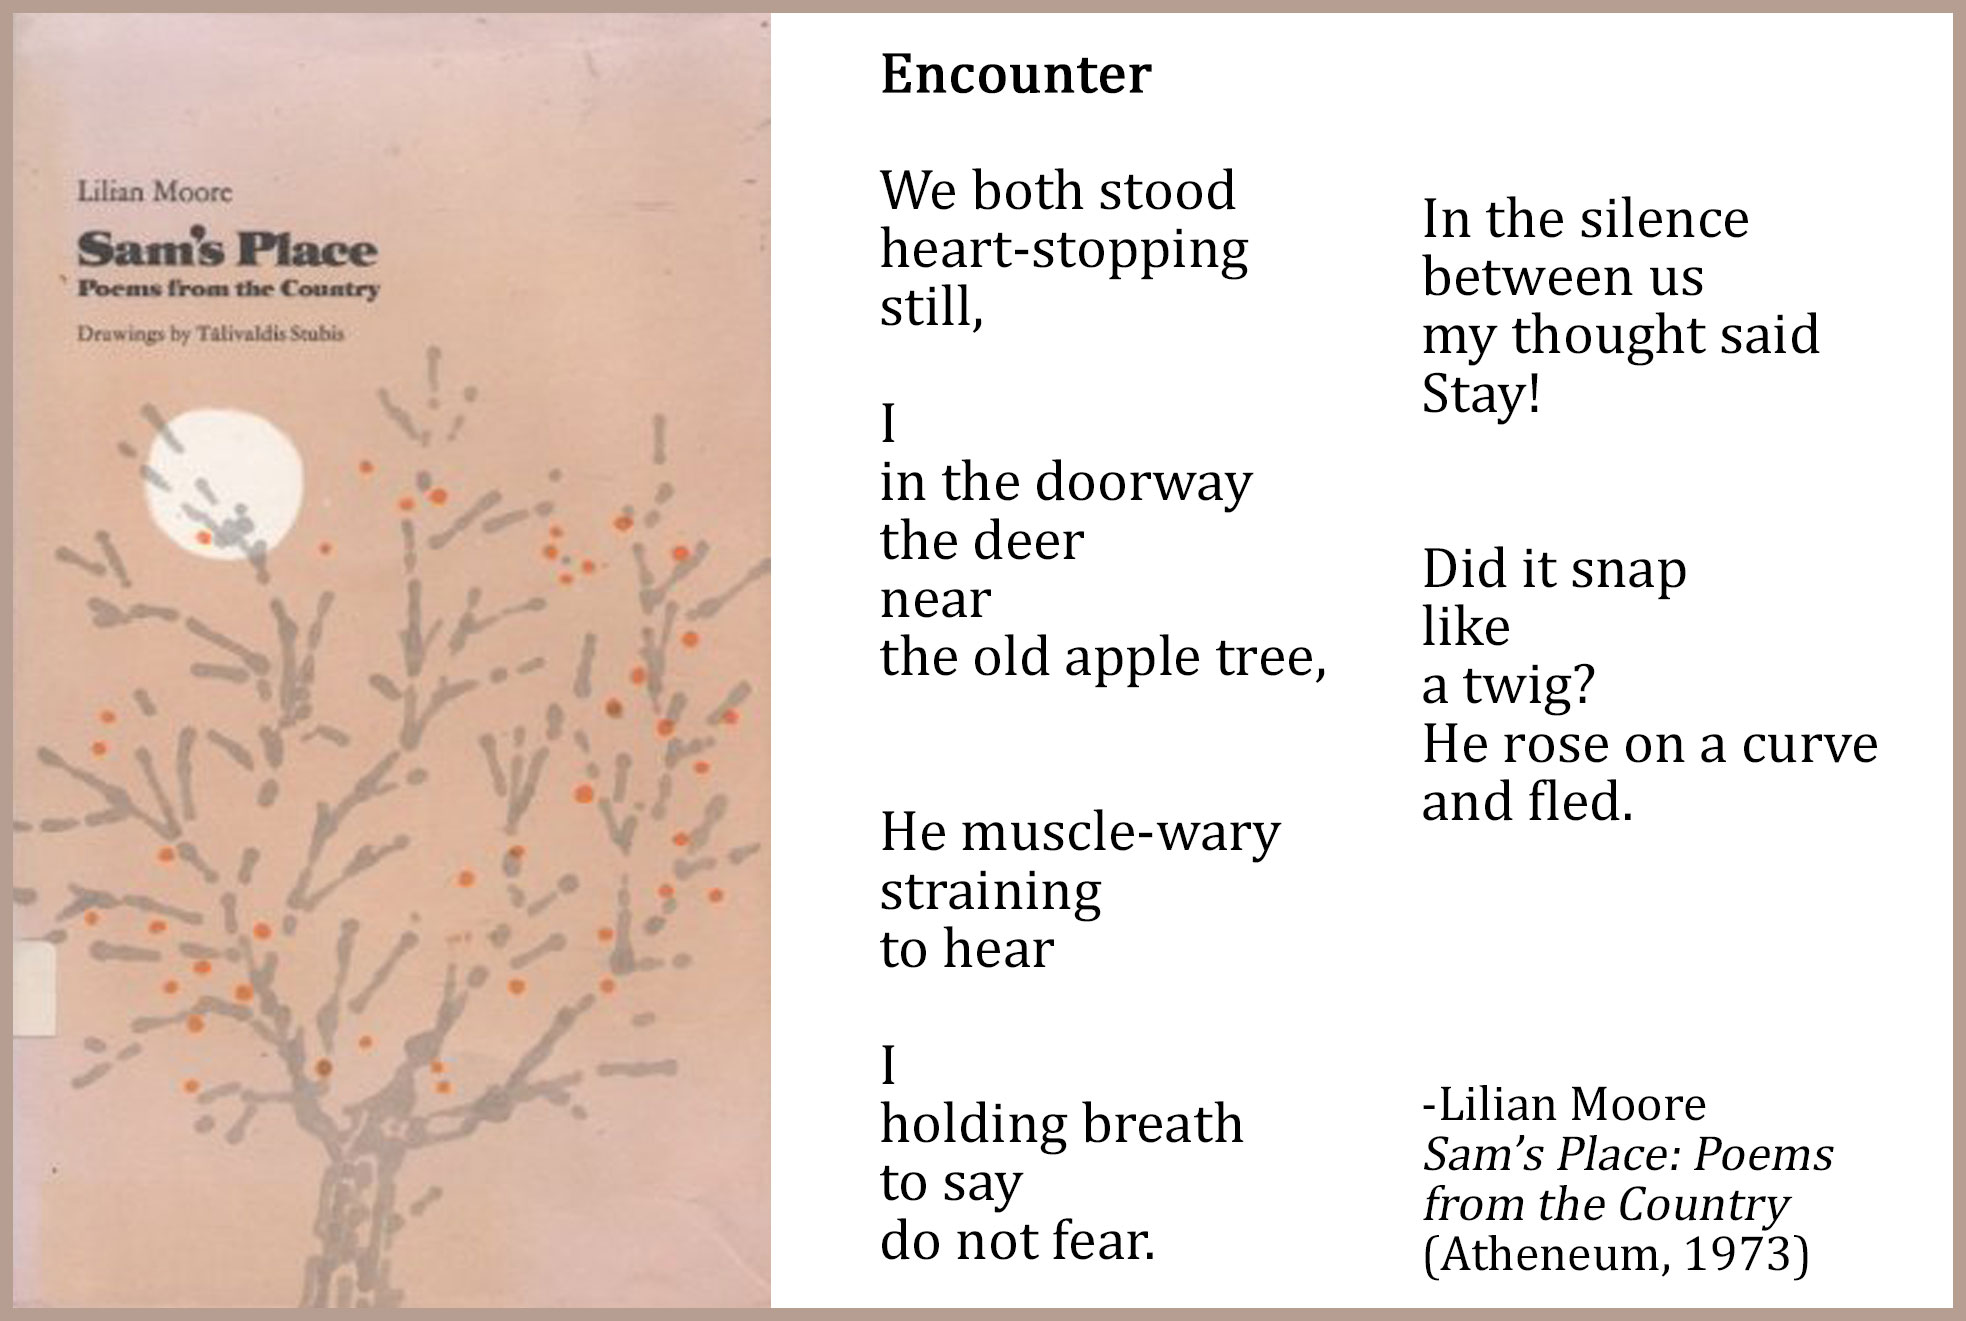 Worksheets Water Poems That Rhyme spotlight on ncte poets lilian moore with lee bennett hopkins encounter spread